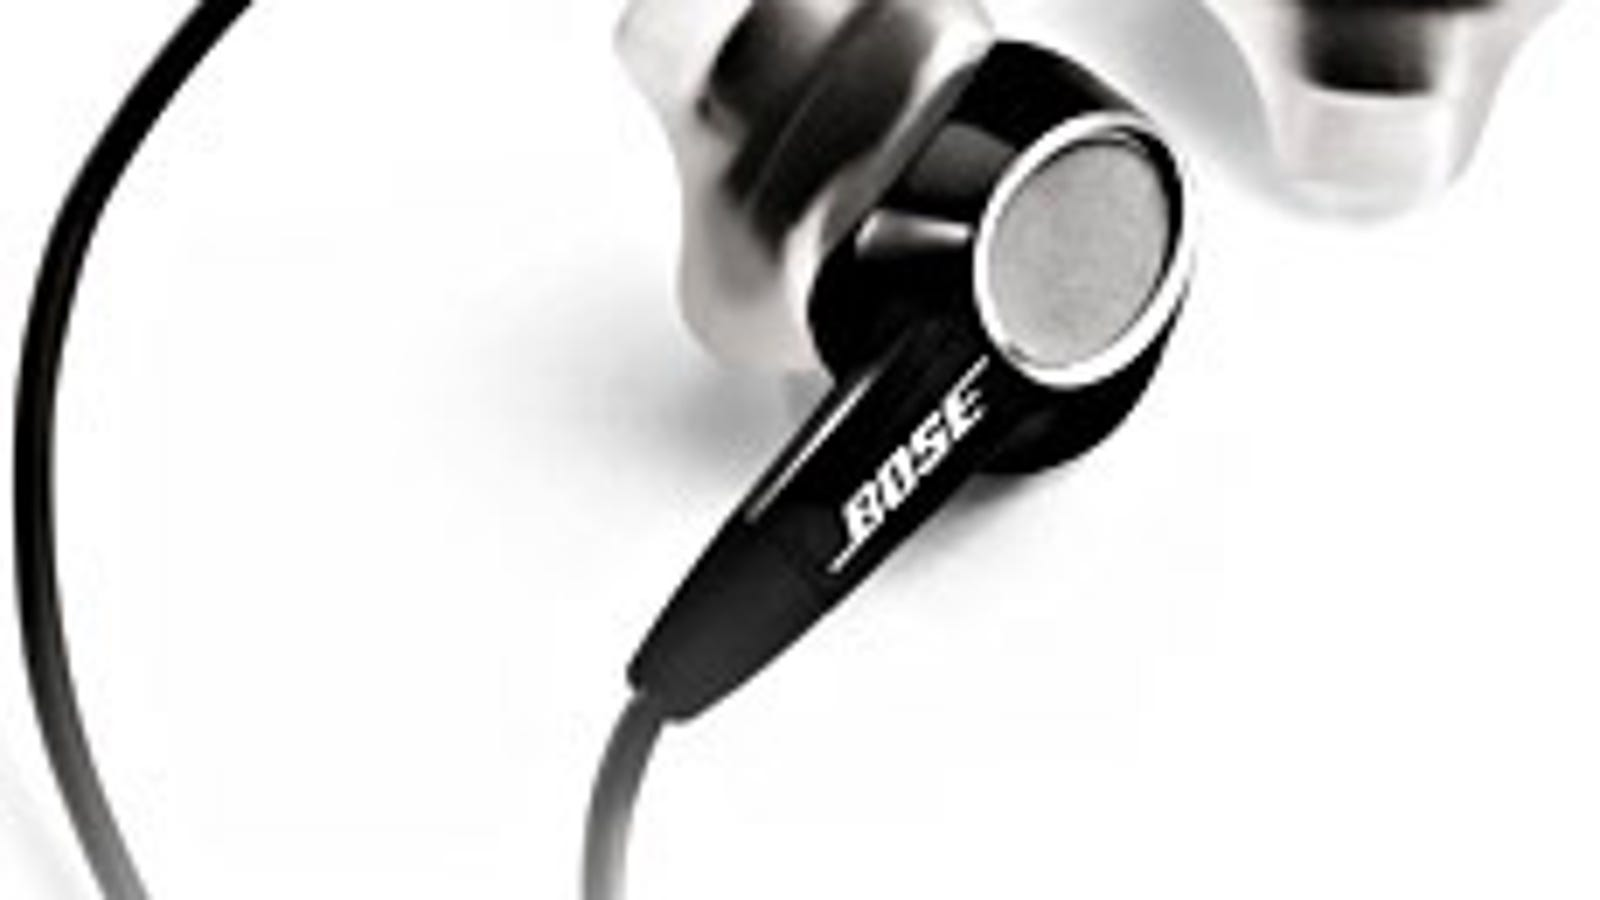 jbl headphones wireless gold - Bose Taking its TriPort Headphones Back to the Drawing Board